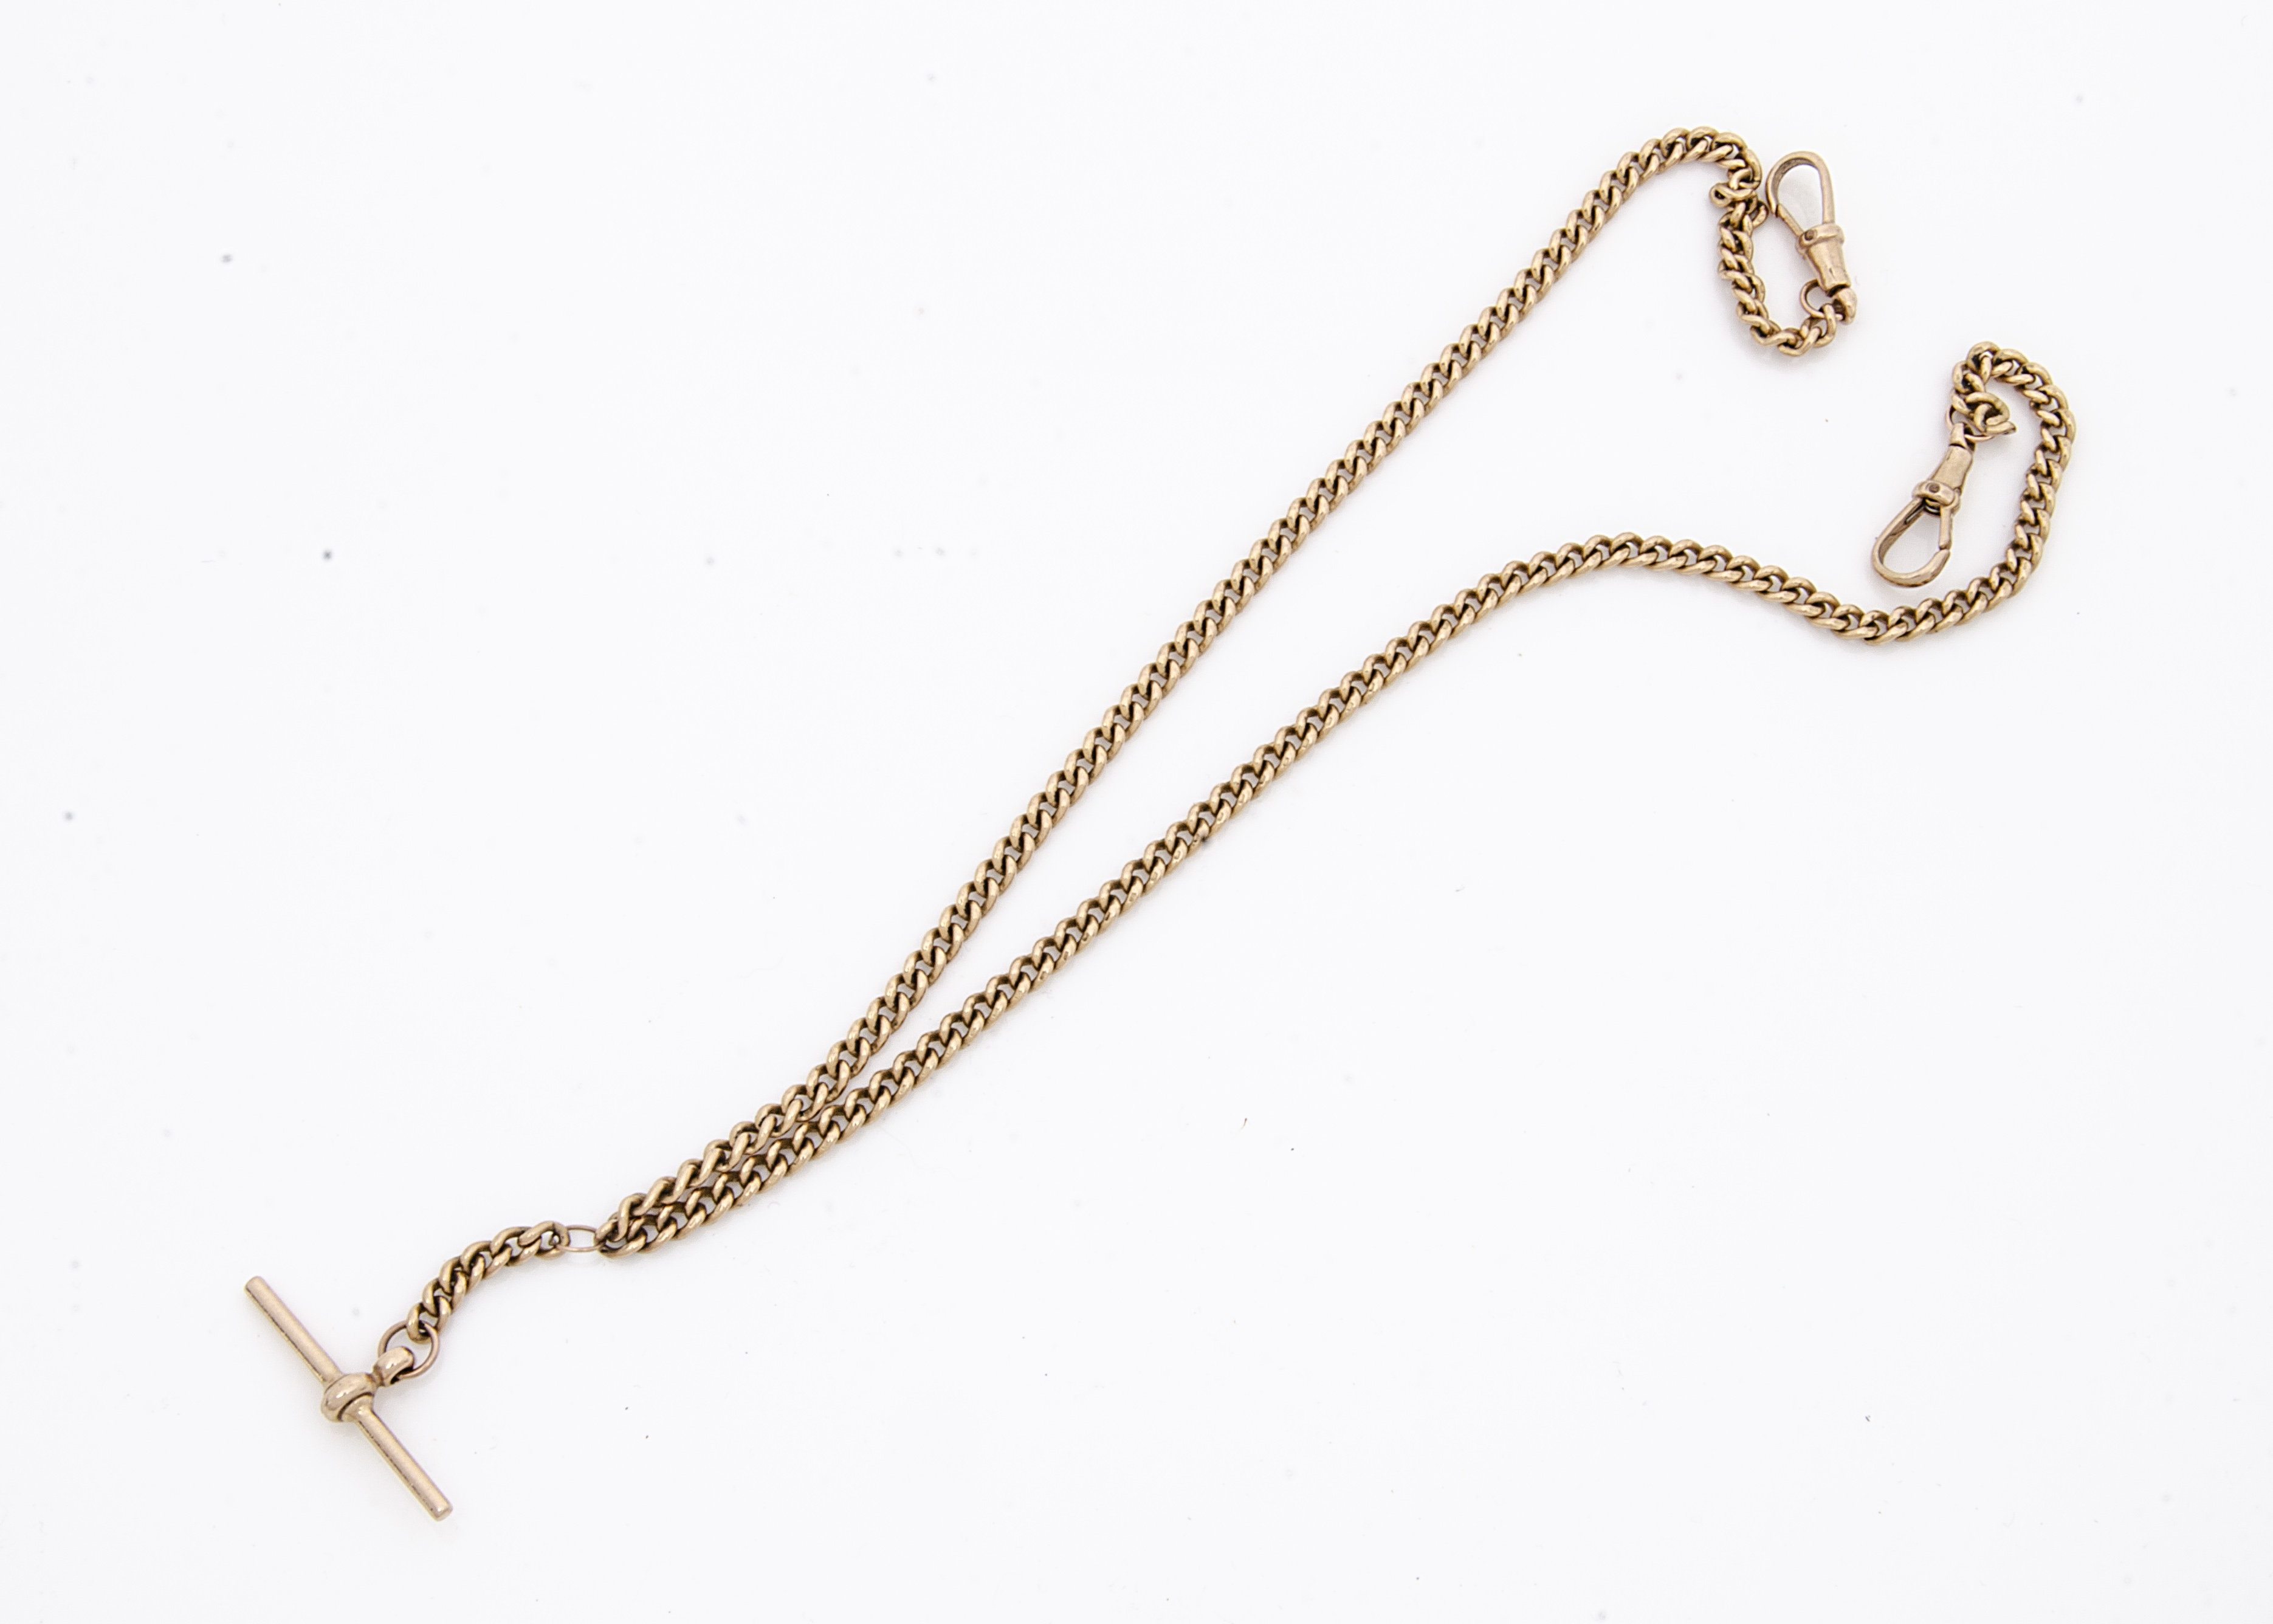 A mid to late 20th Century 9ct gold watch chain, small curb link double Albert chains with hallmarks